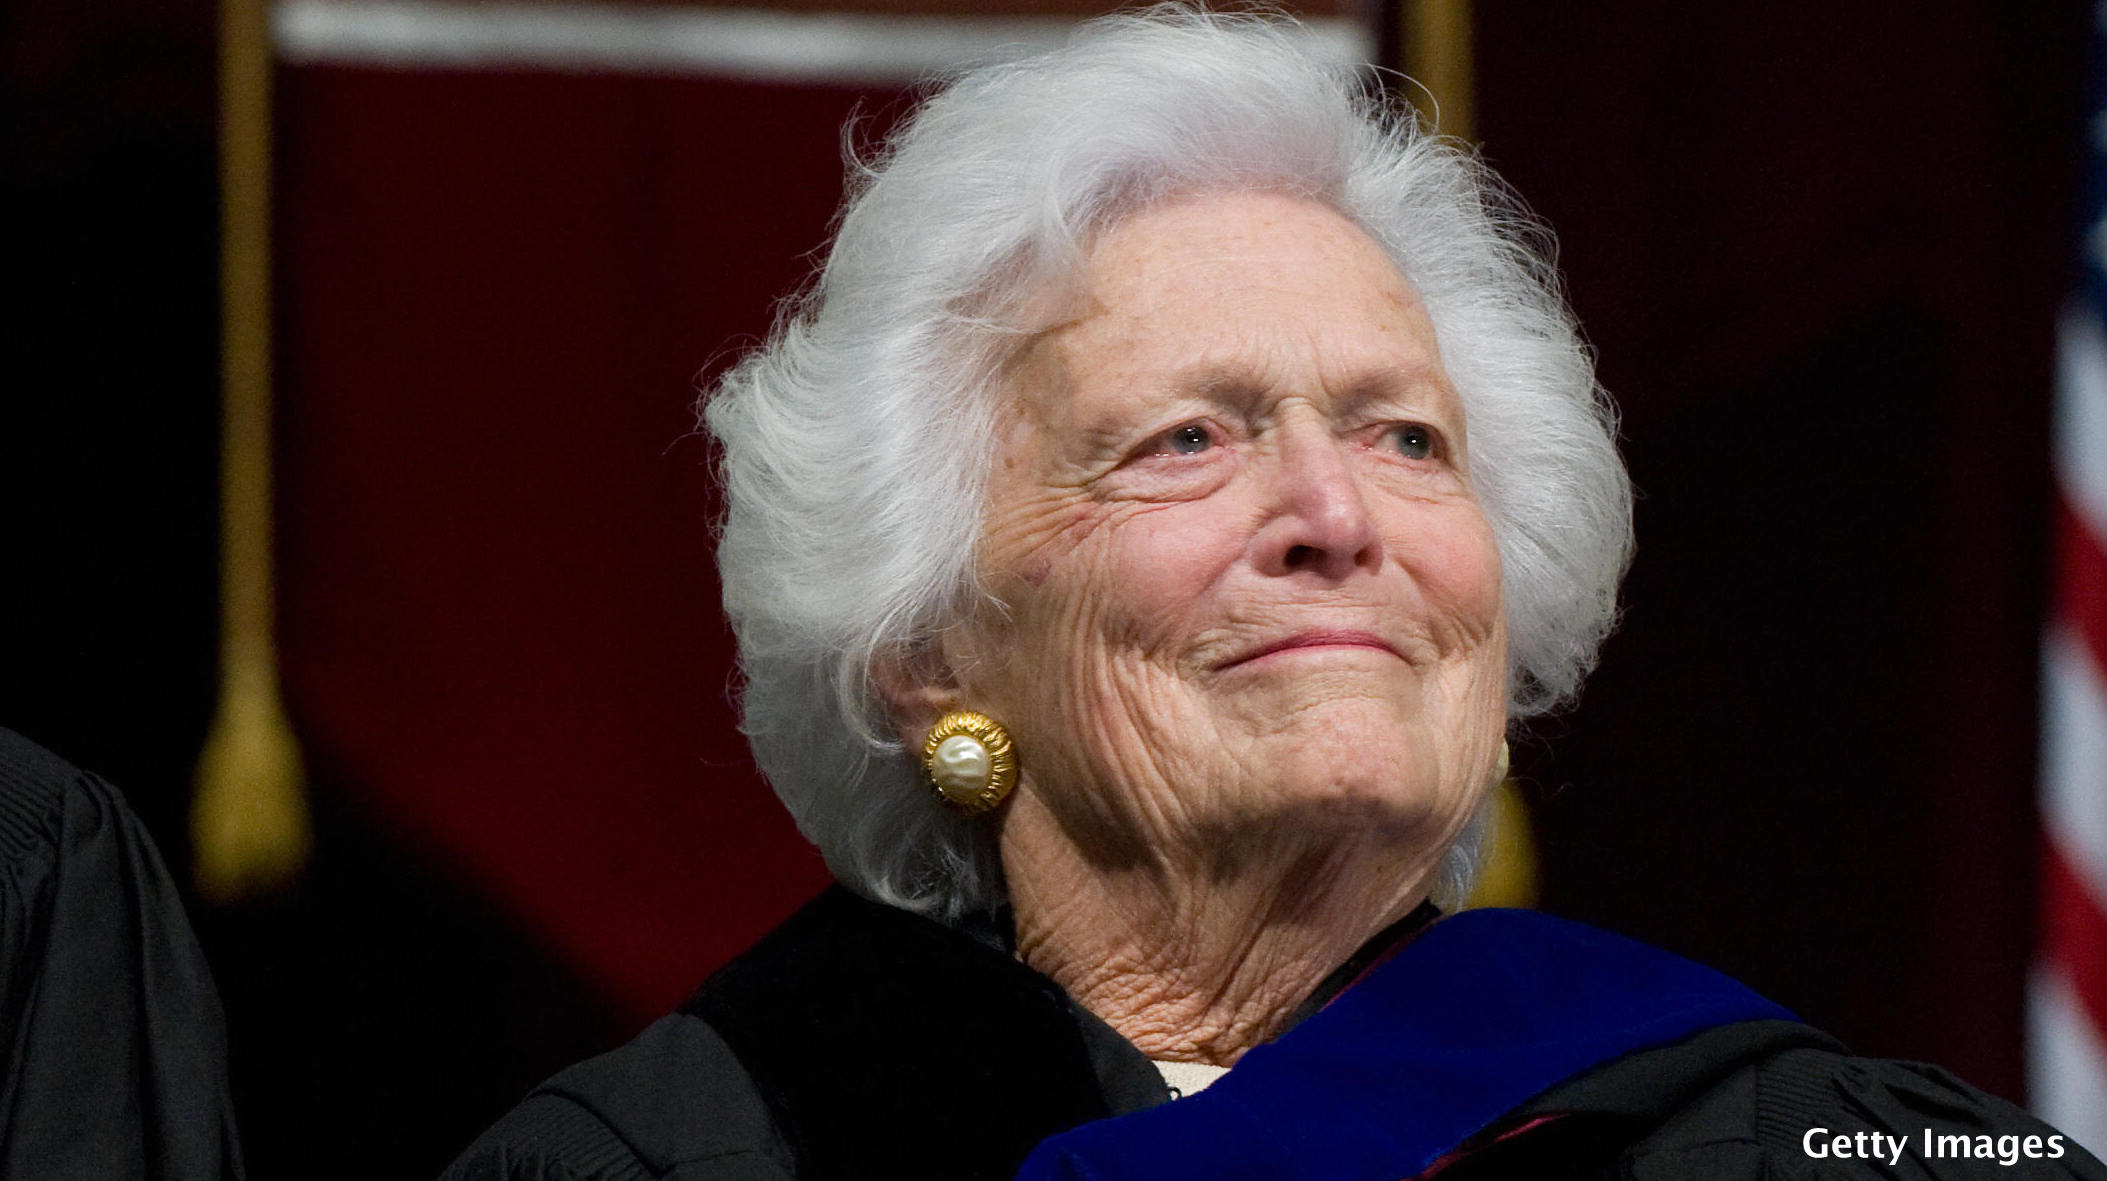 Barbara Bush: This is the 'worst campaign I've ever seen'